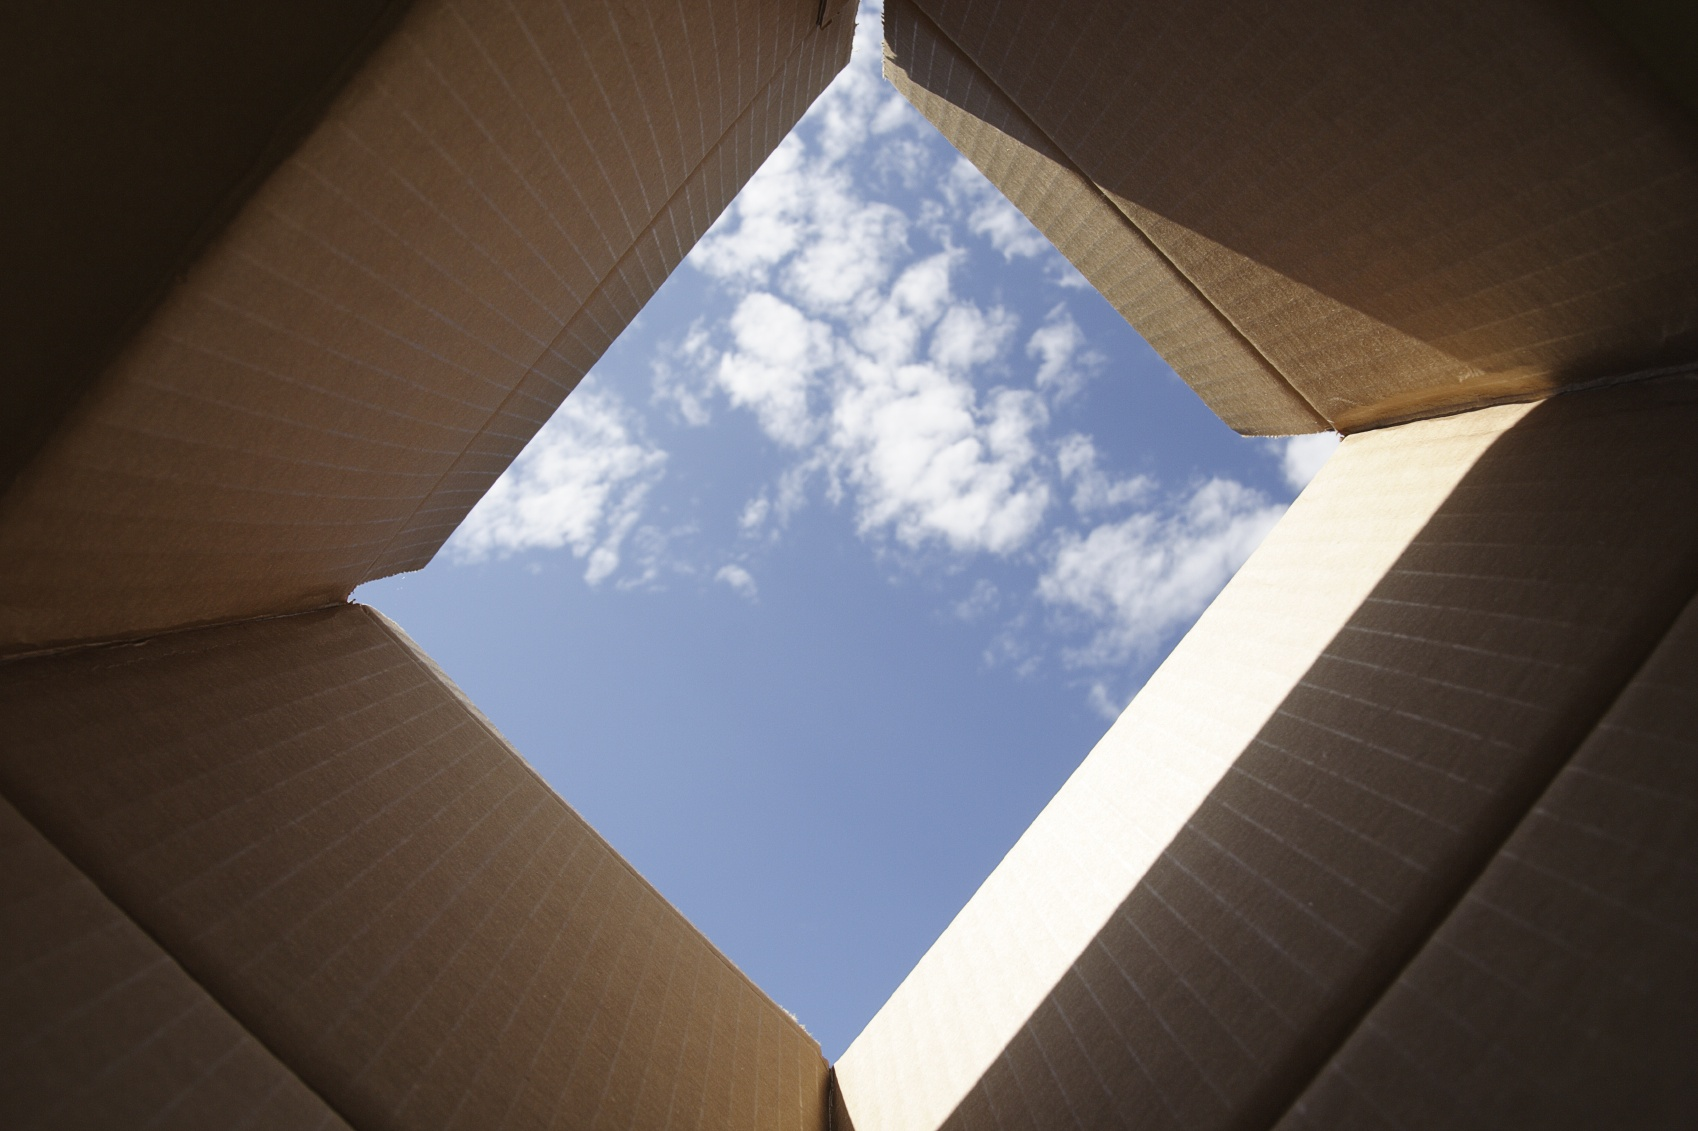 Looking up through a moving box to a blue sky